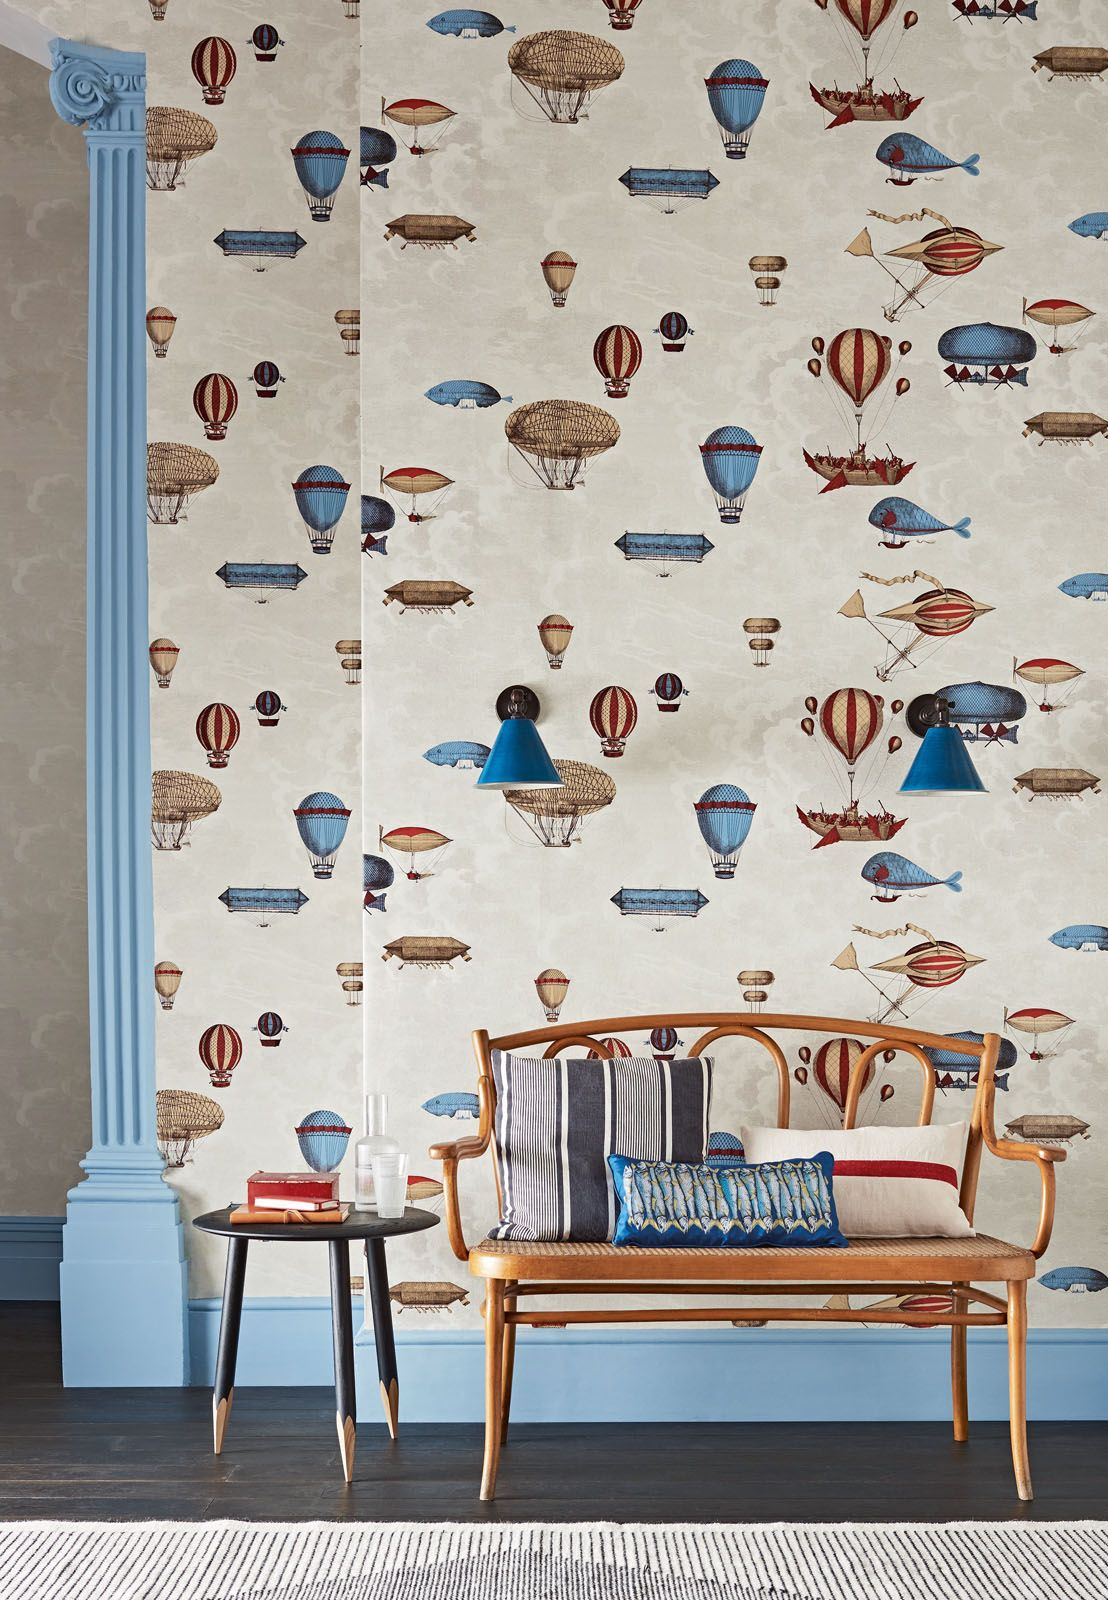 The Macchine Volanti wallpaper from Cole & Son's Fornasetti Senza Tempo collection, from Goodrich Global